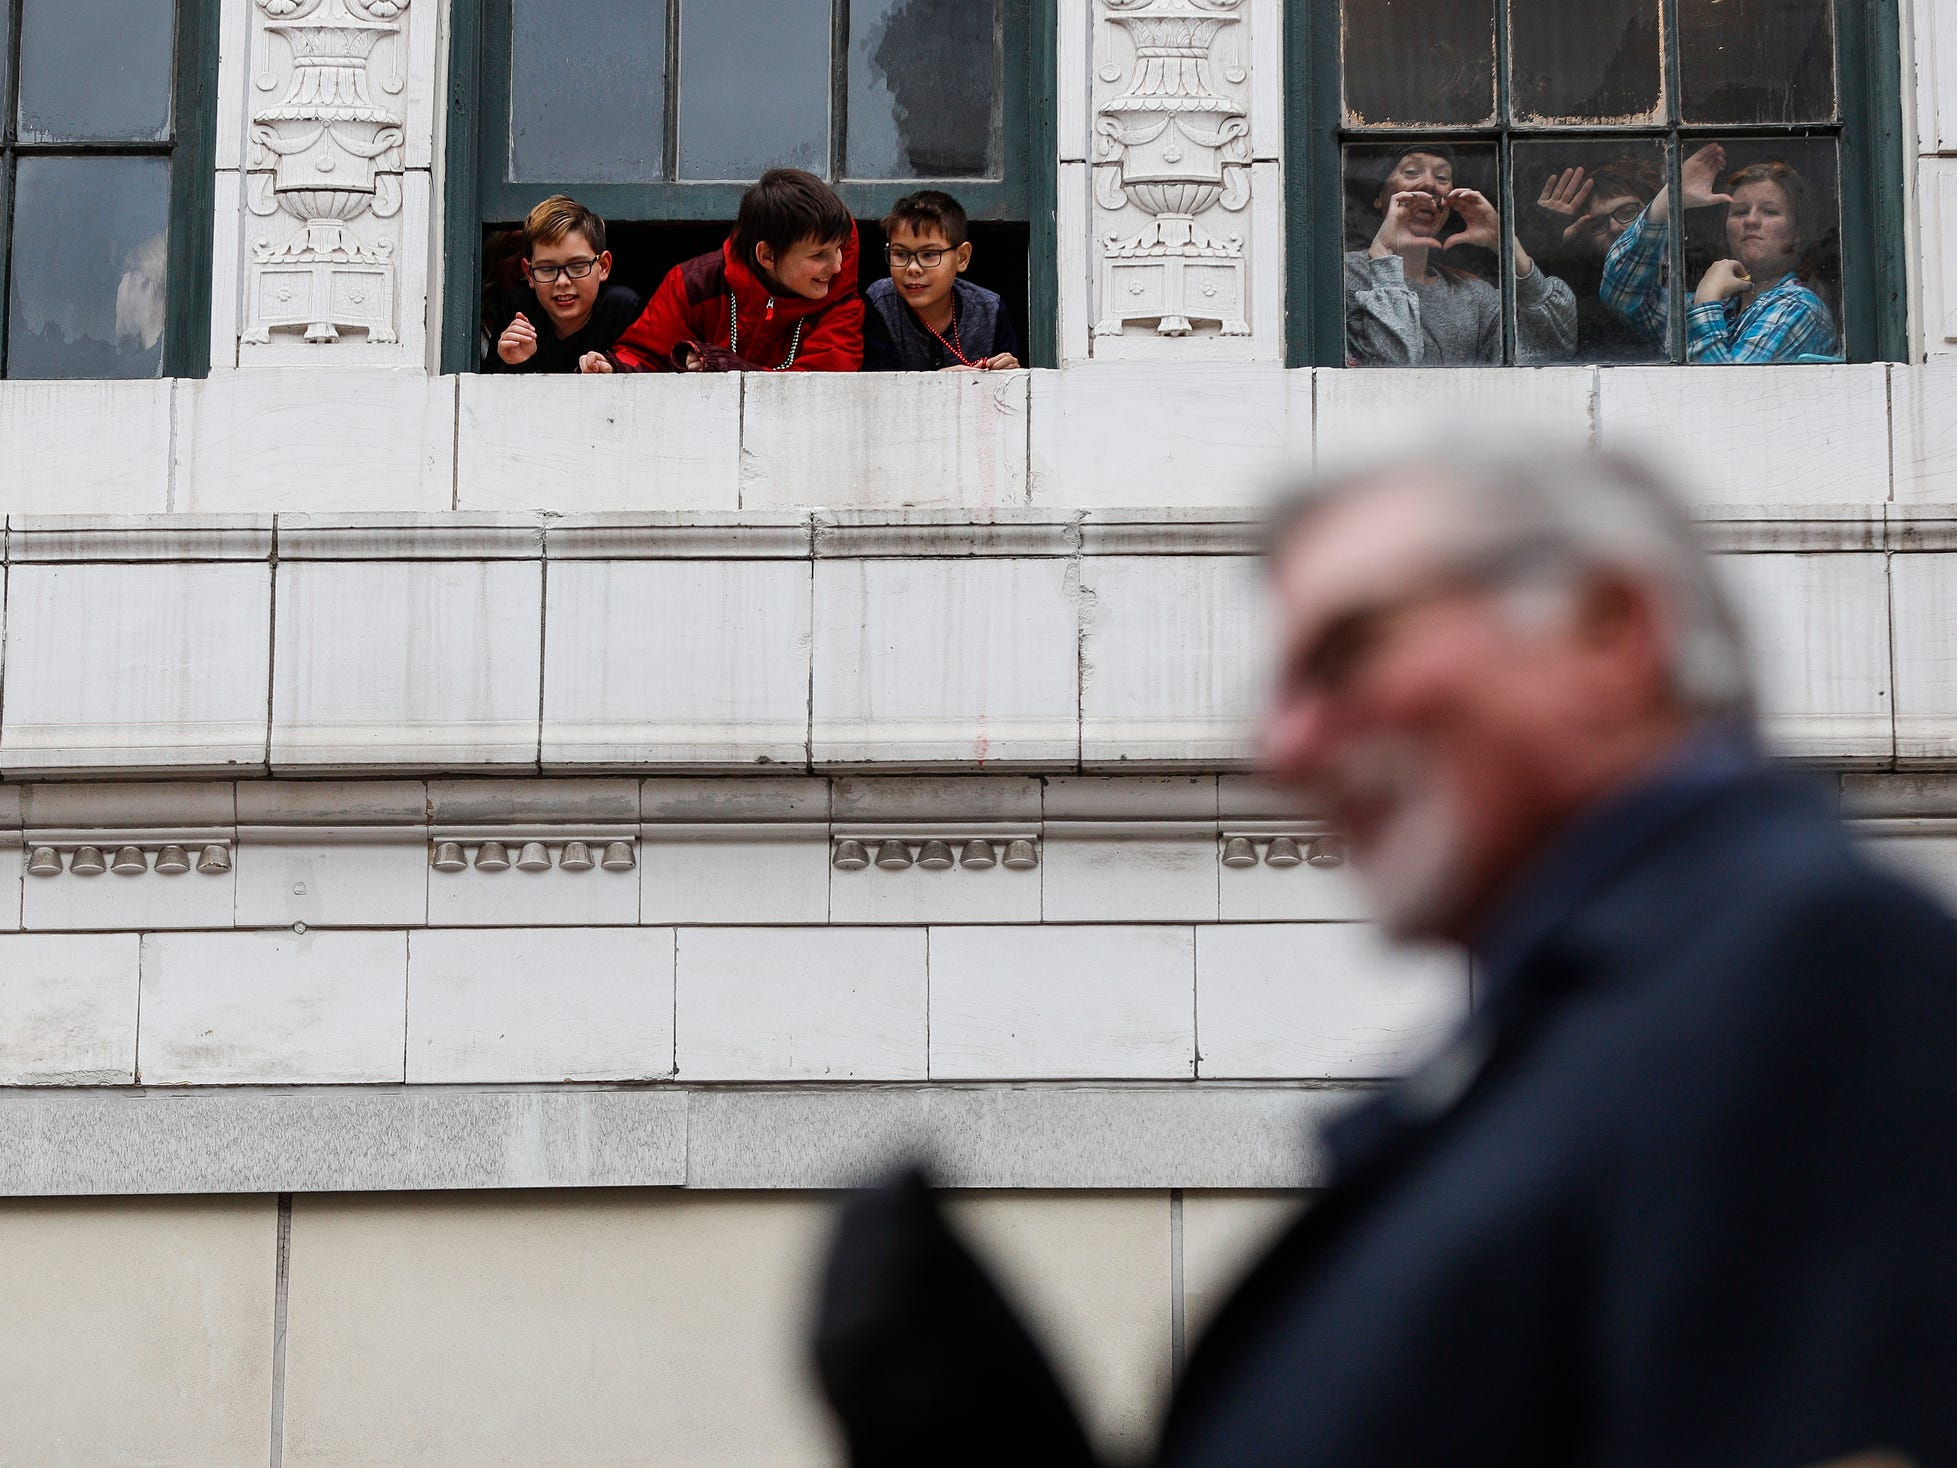 Spectators watch the parade as former Detroit Tigers's pitcher Jack Morris goes by on Woodward Avenue during the 92nd America's Thanksgiving Day Parade in Detroit, Thursday, Nov. 22, 2018.